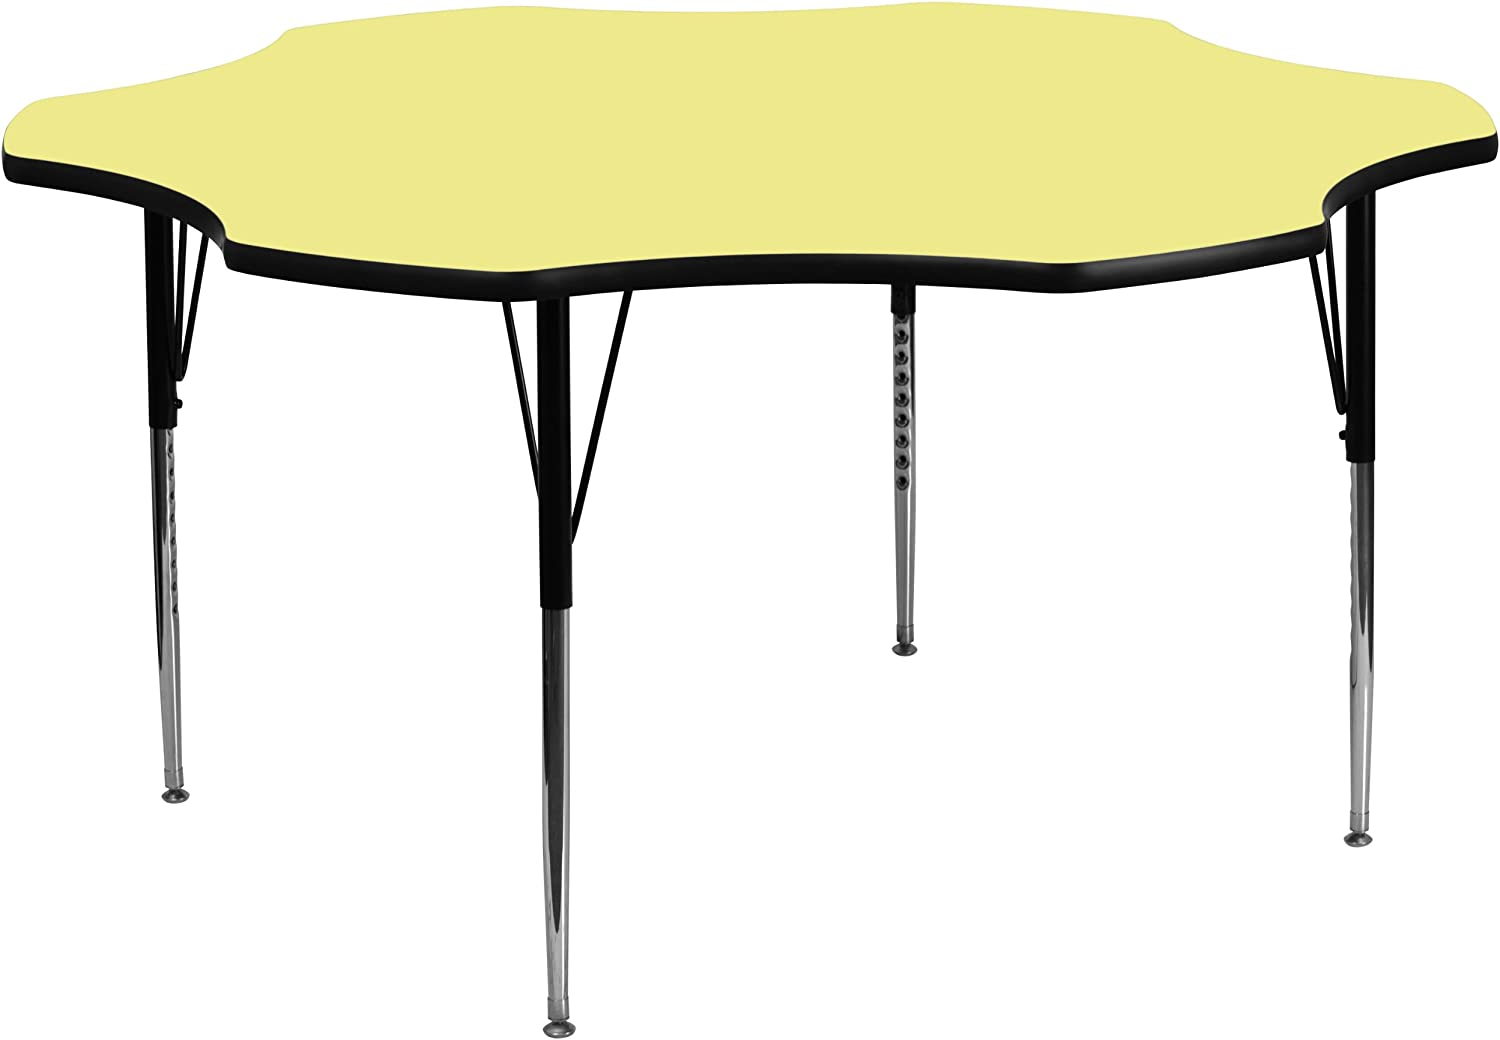 Flash Furniture 60'' Flower Yellow Thermal Laminate Activity Table - Standard Height Adjustable Legs